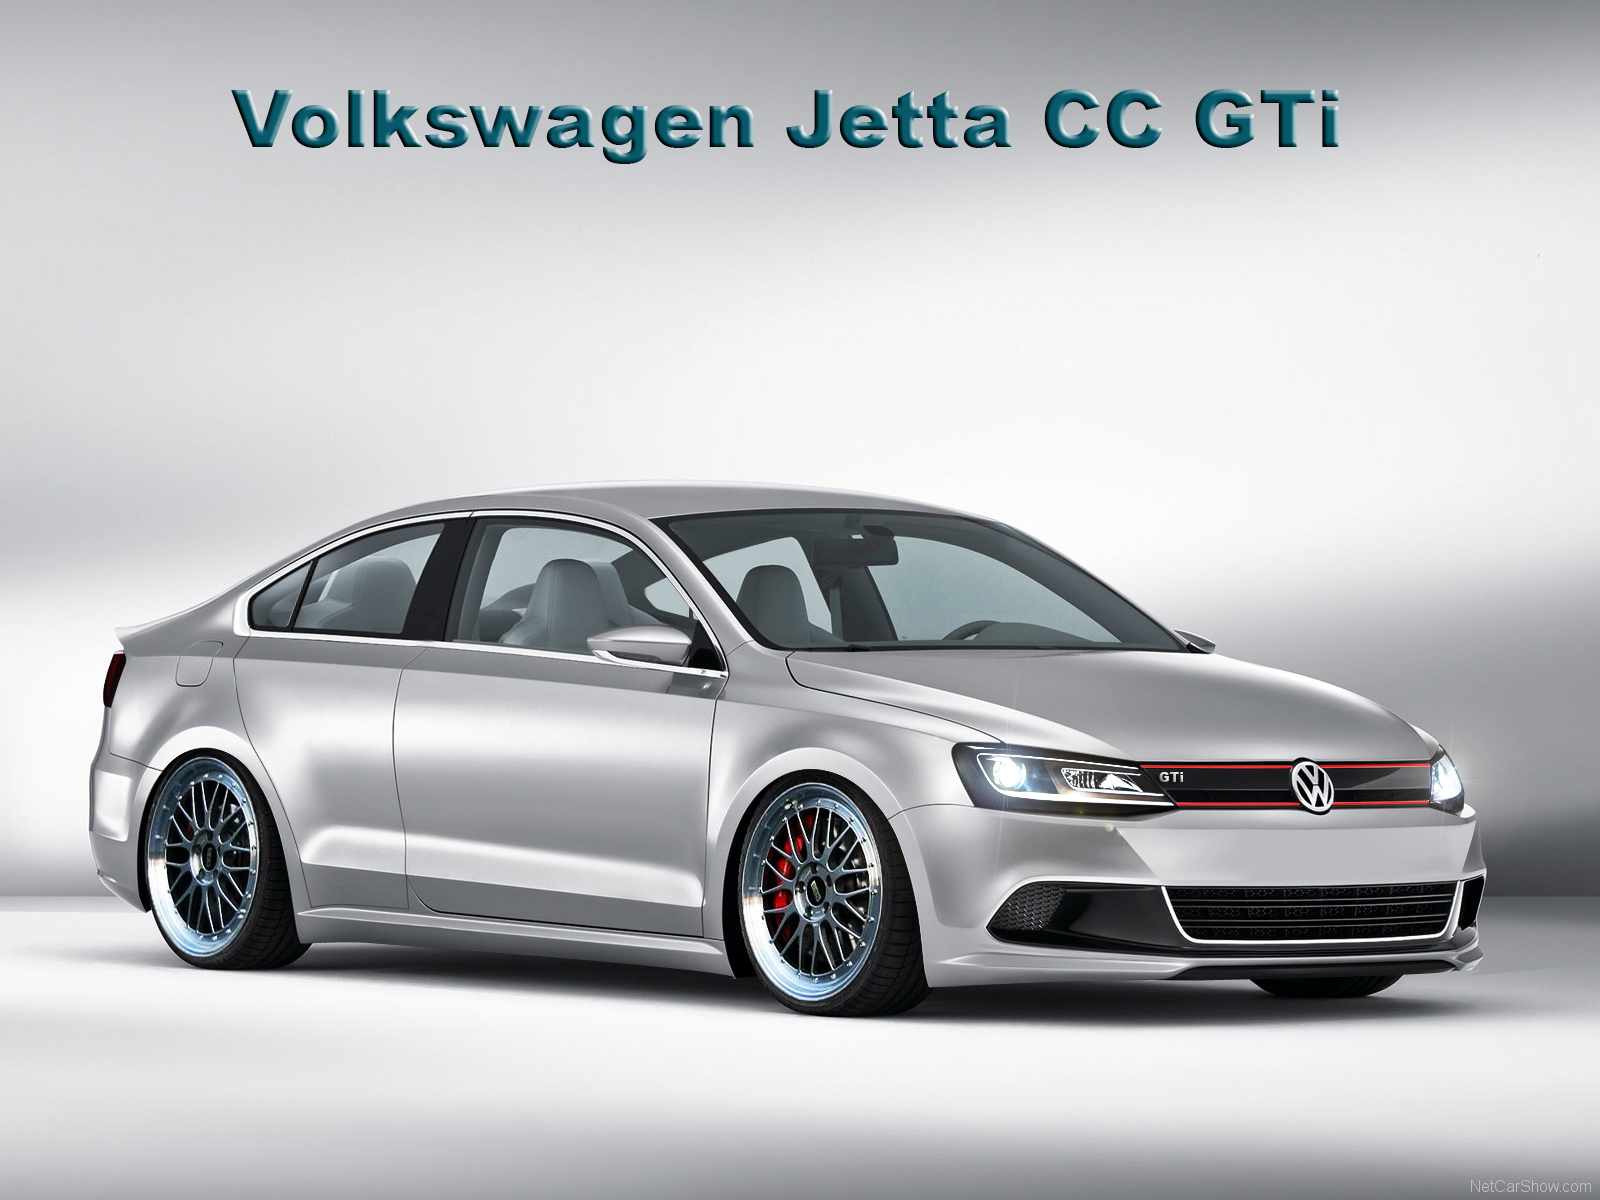 volkswagen jetta cc gti deine automeile im netz. Black Bedroom Furniture Sets. Home Design Ideas